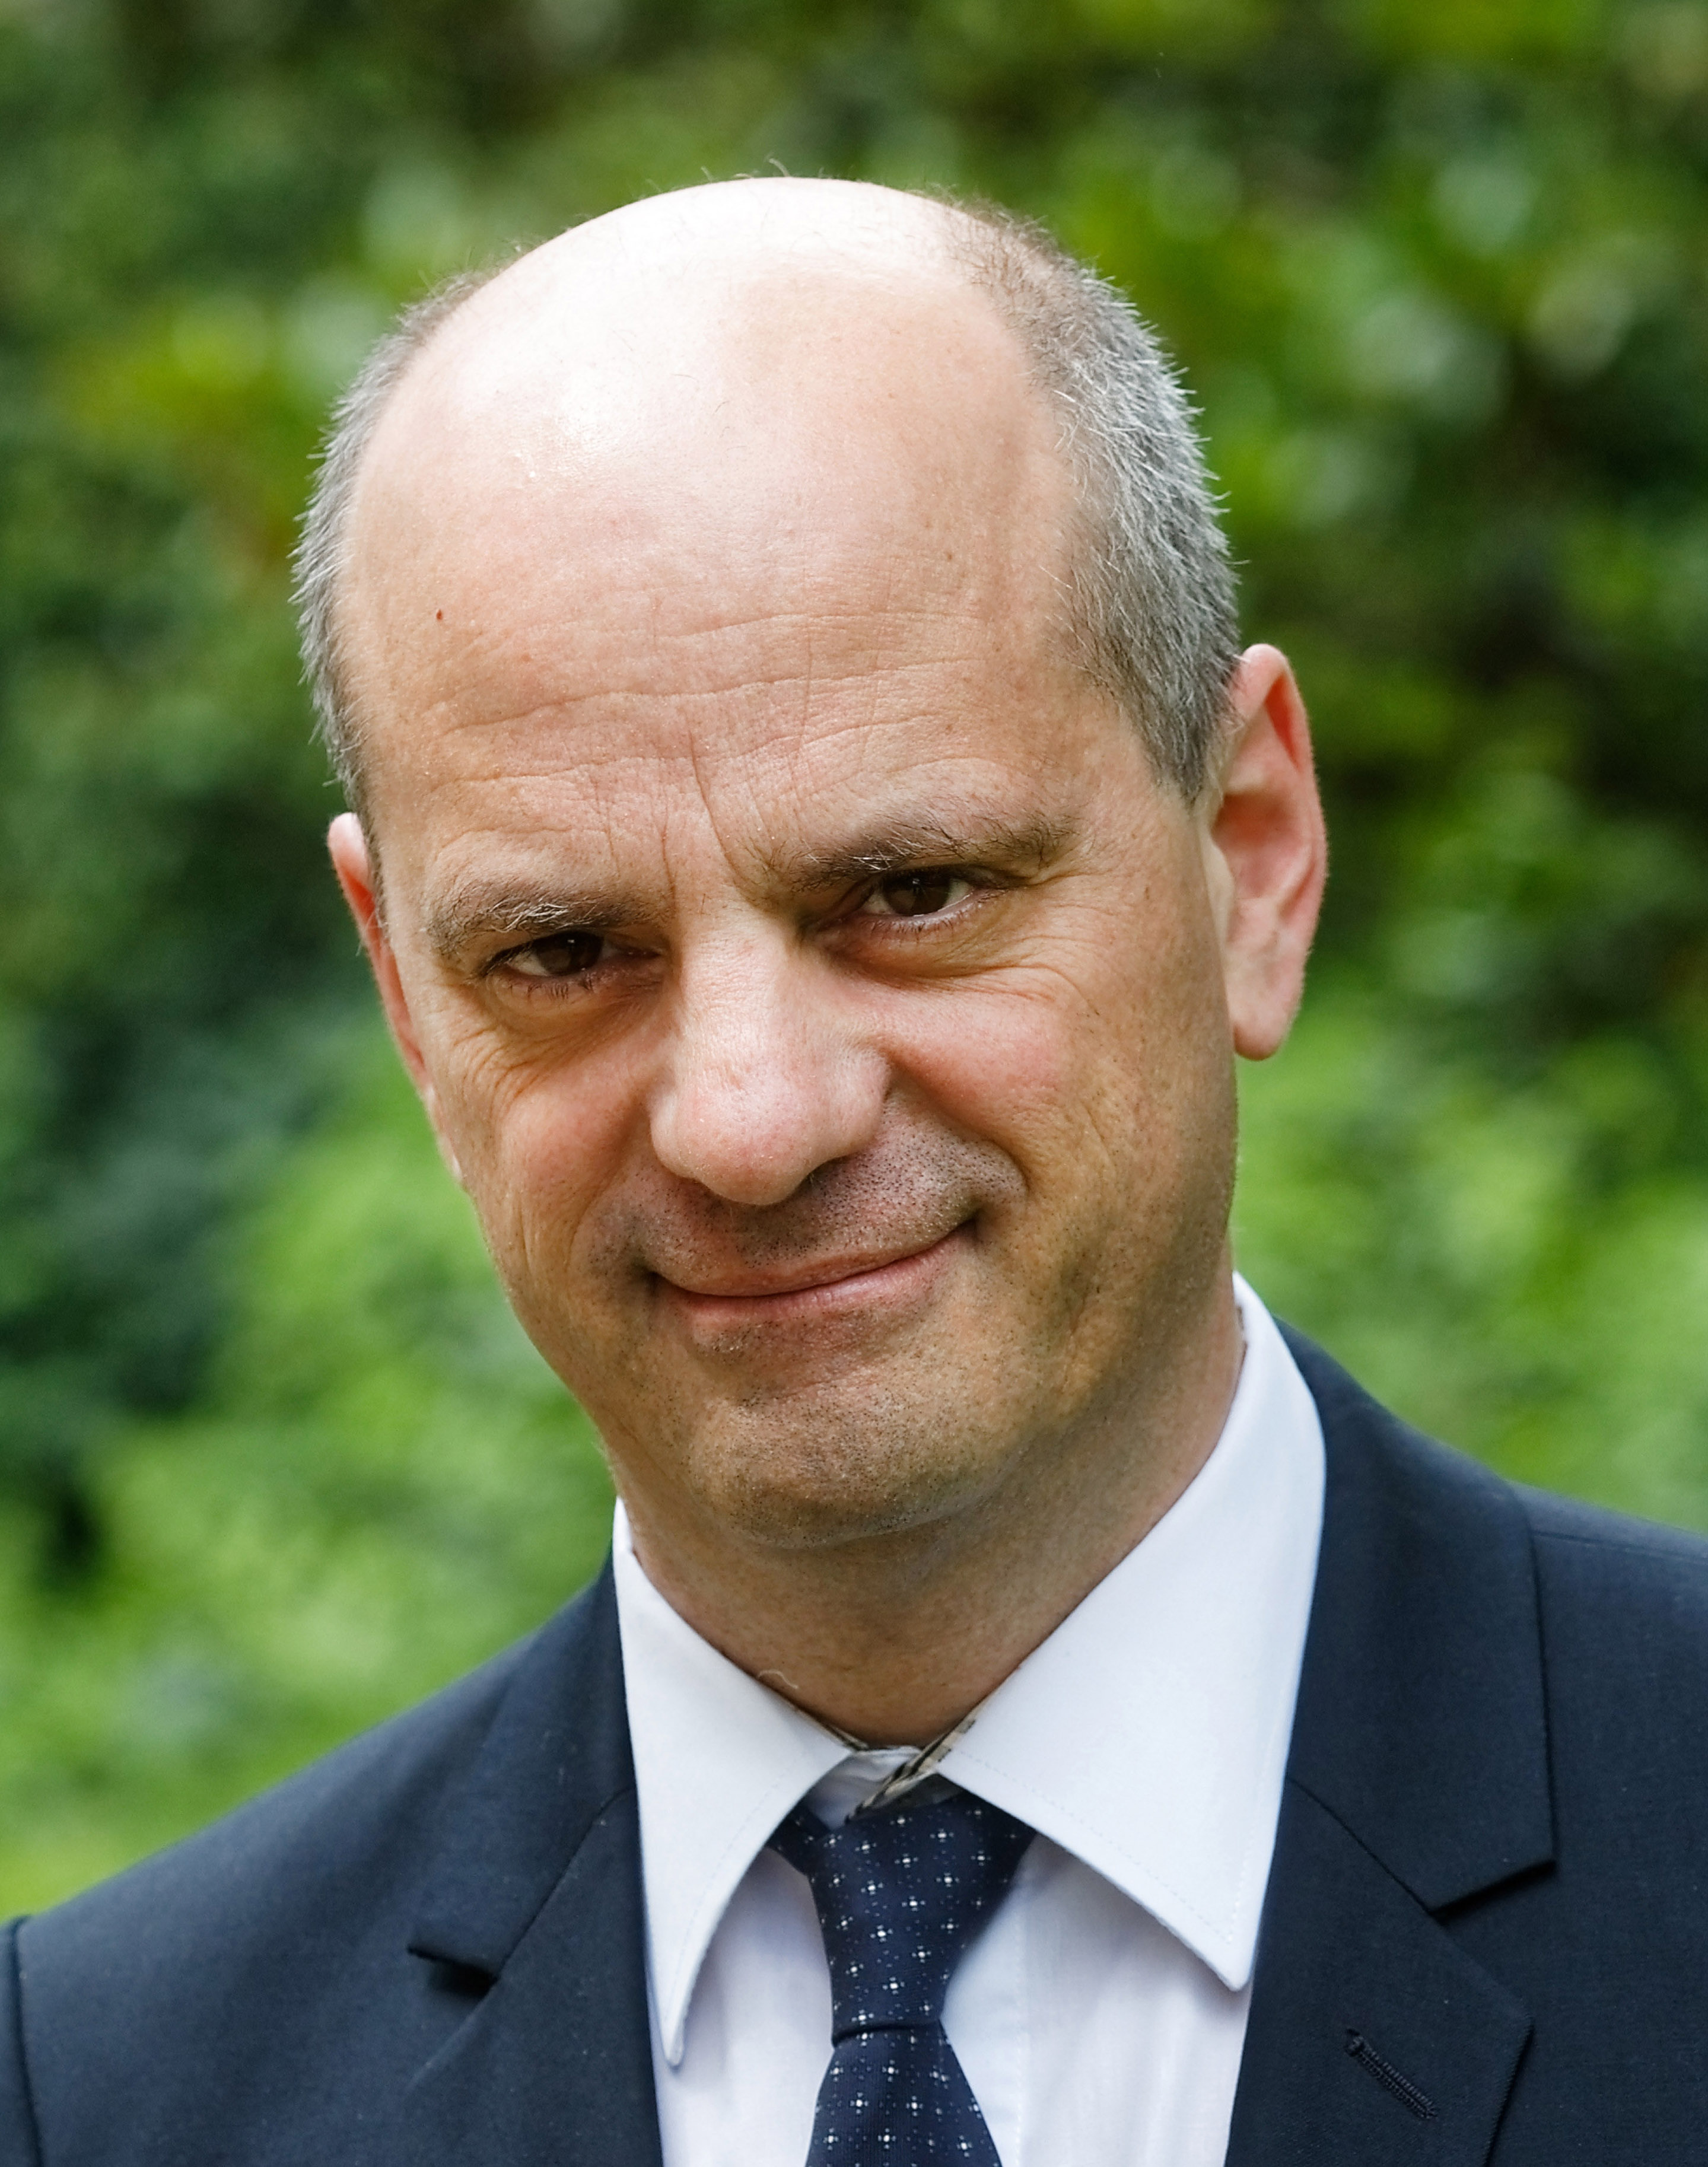 L'édito de Jean-Michel Blanquer, Ministre de l'Education nationale